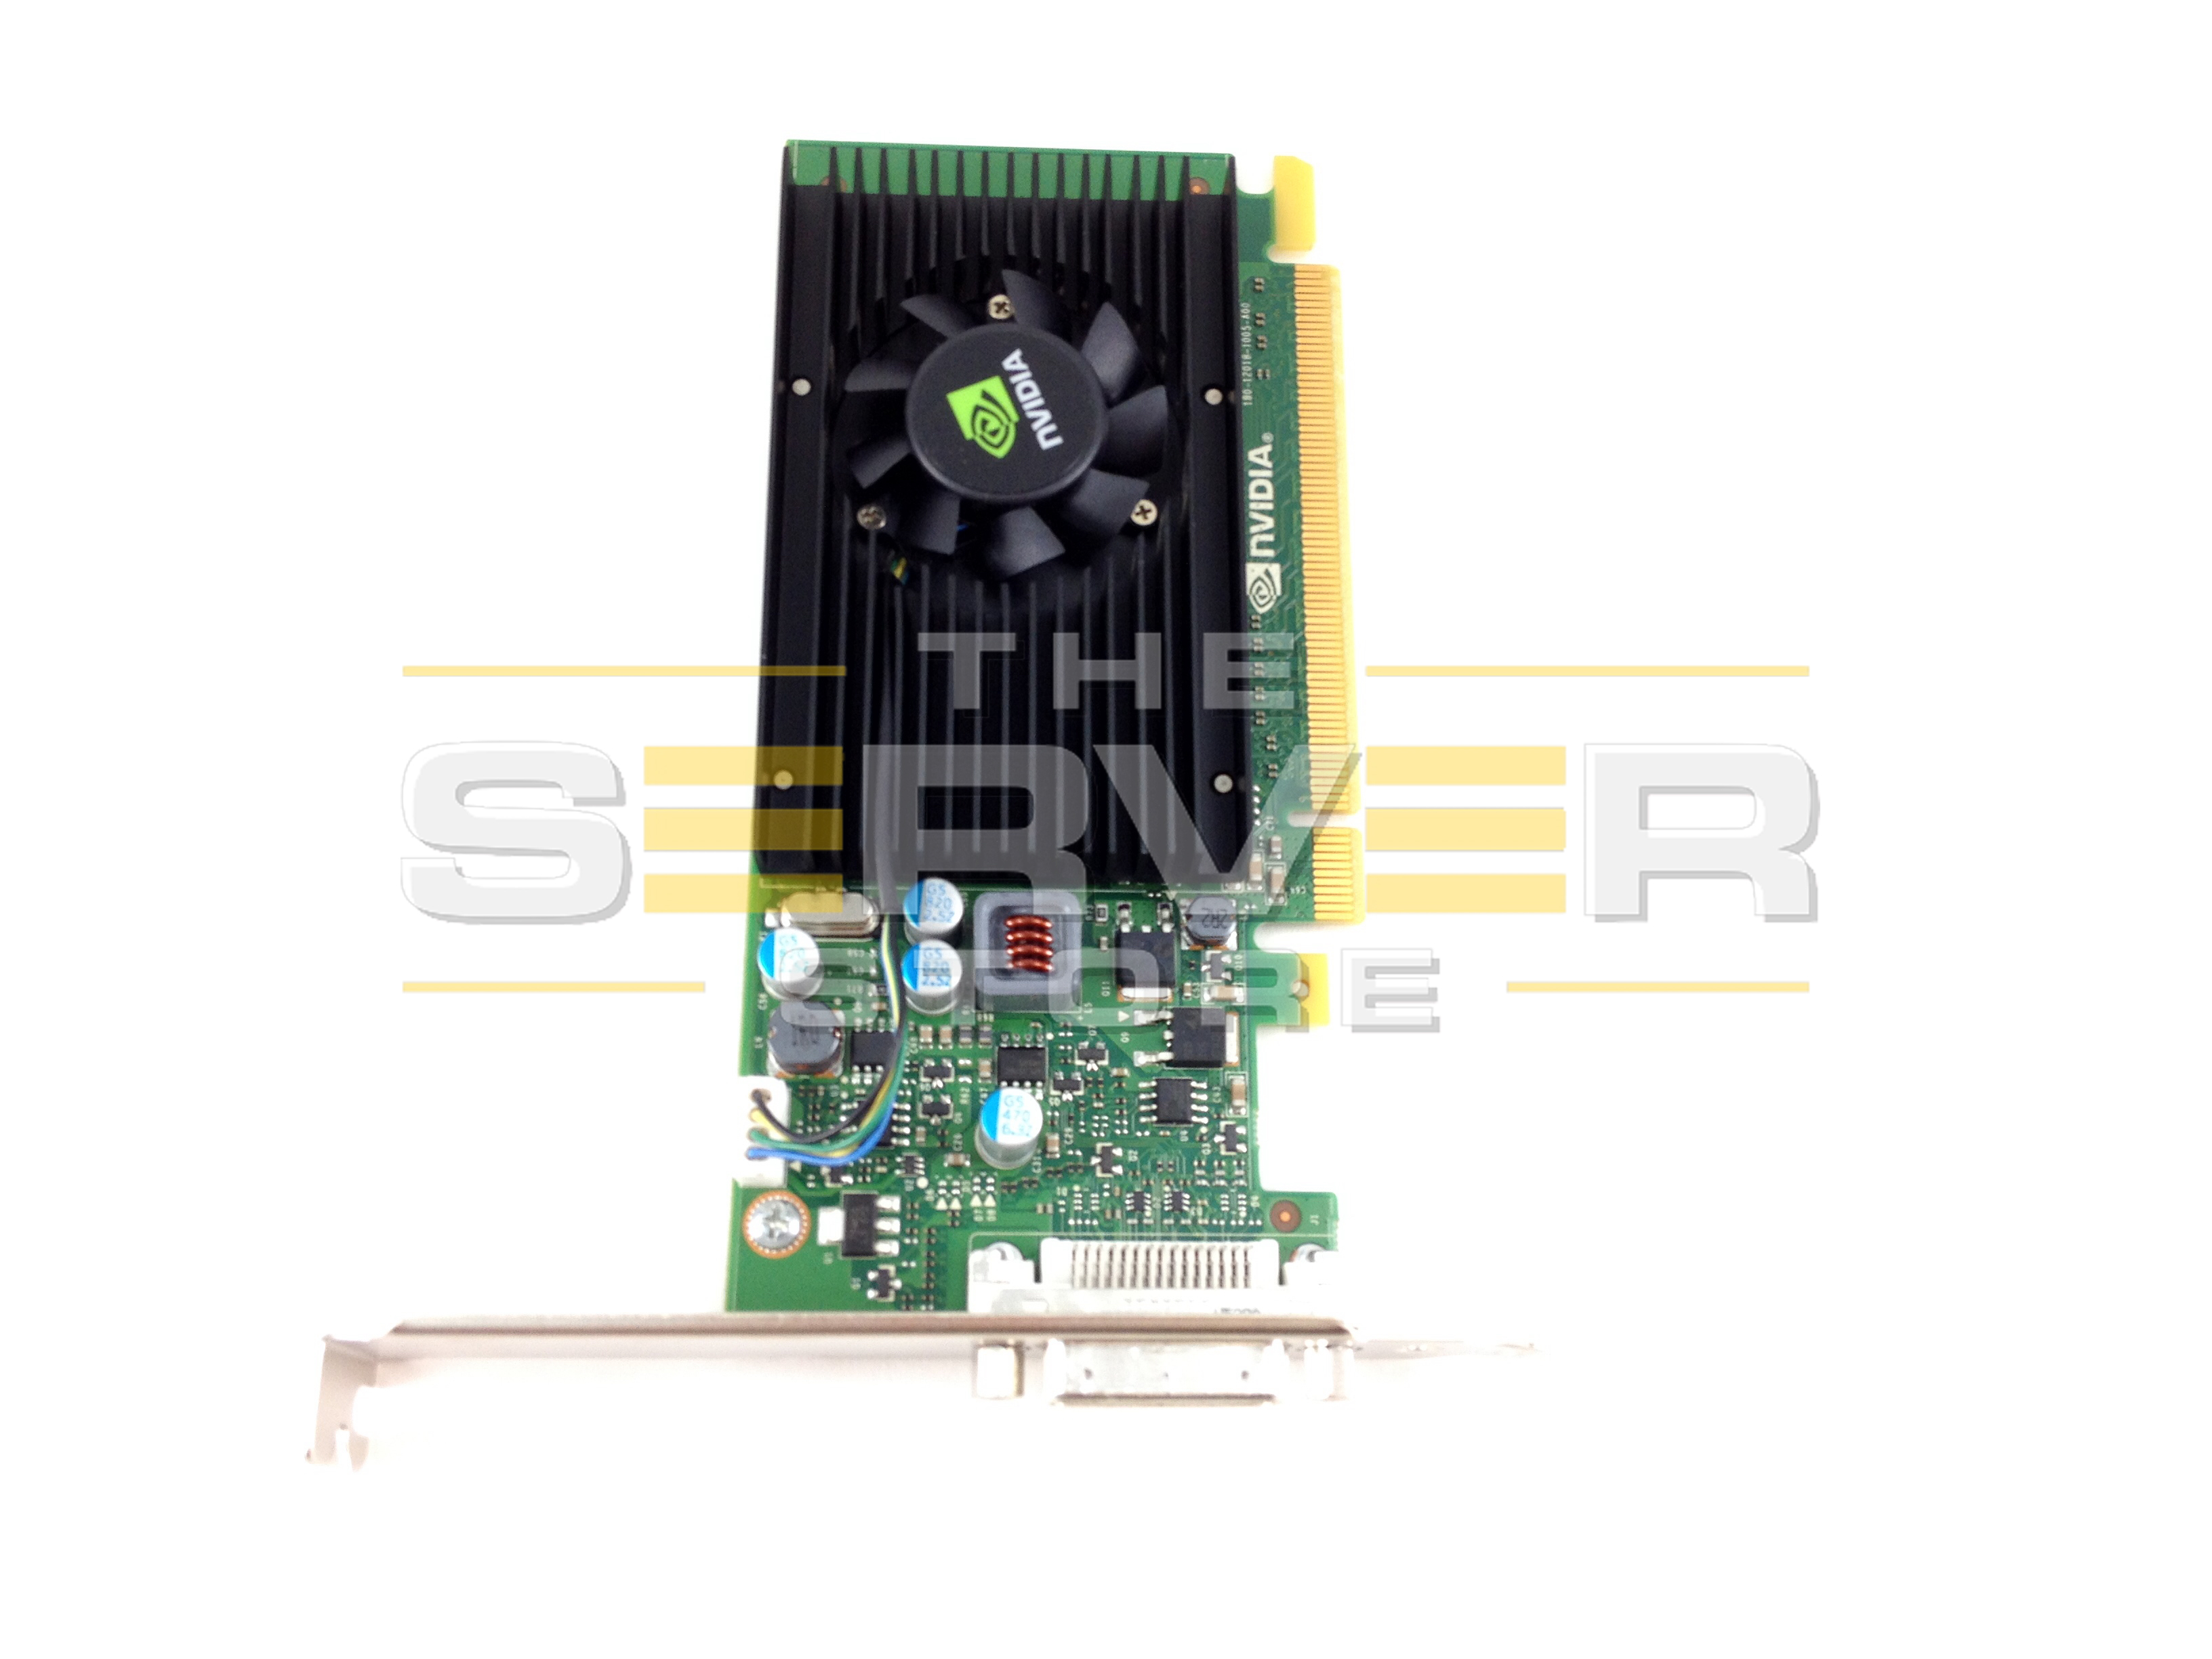 NVIDIA Quadro NVS 315 Graphics Card